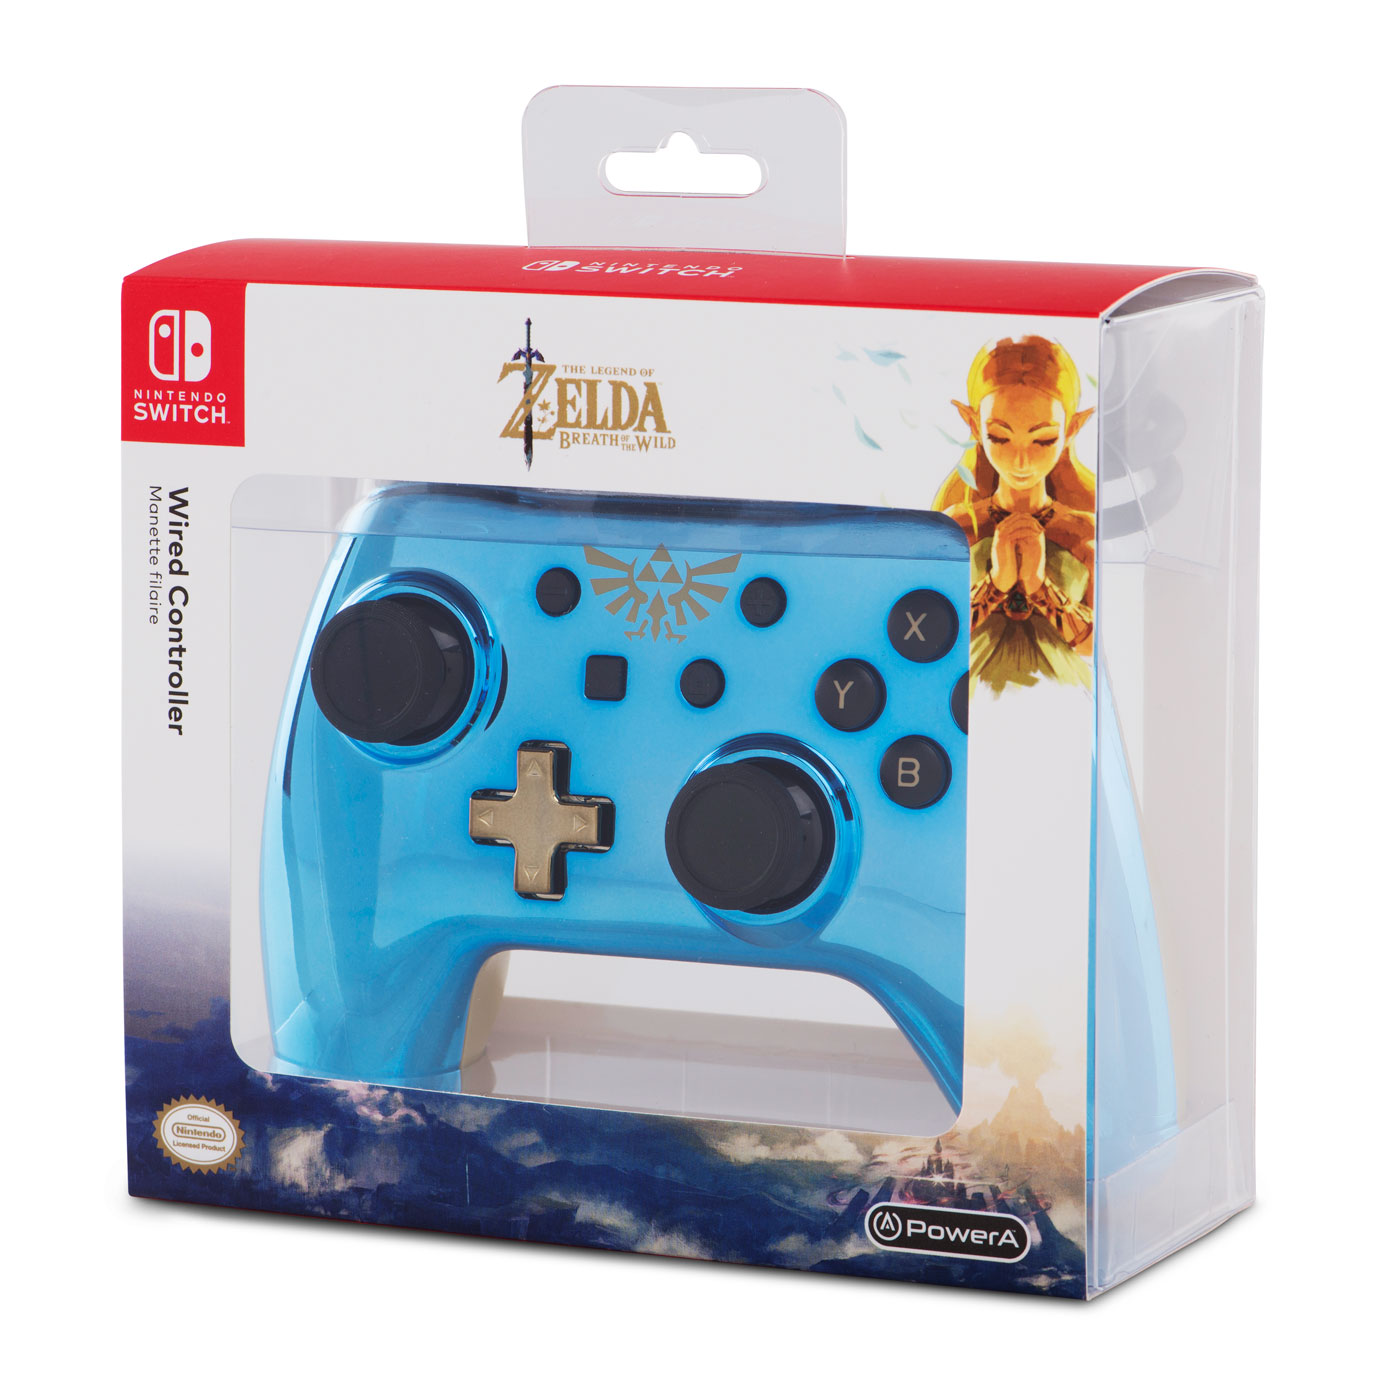 PowerA selling wired chrome controllers for Switch